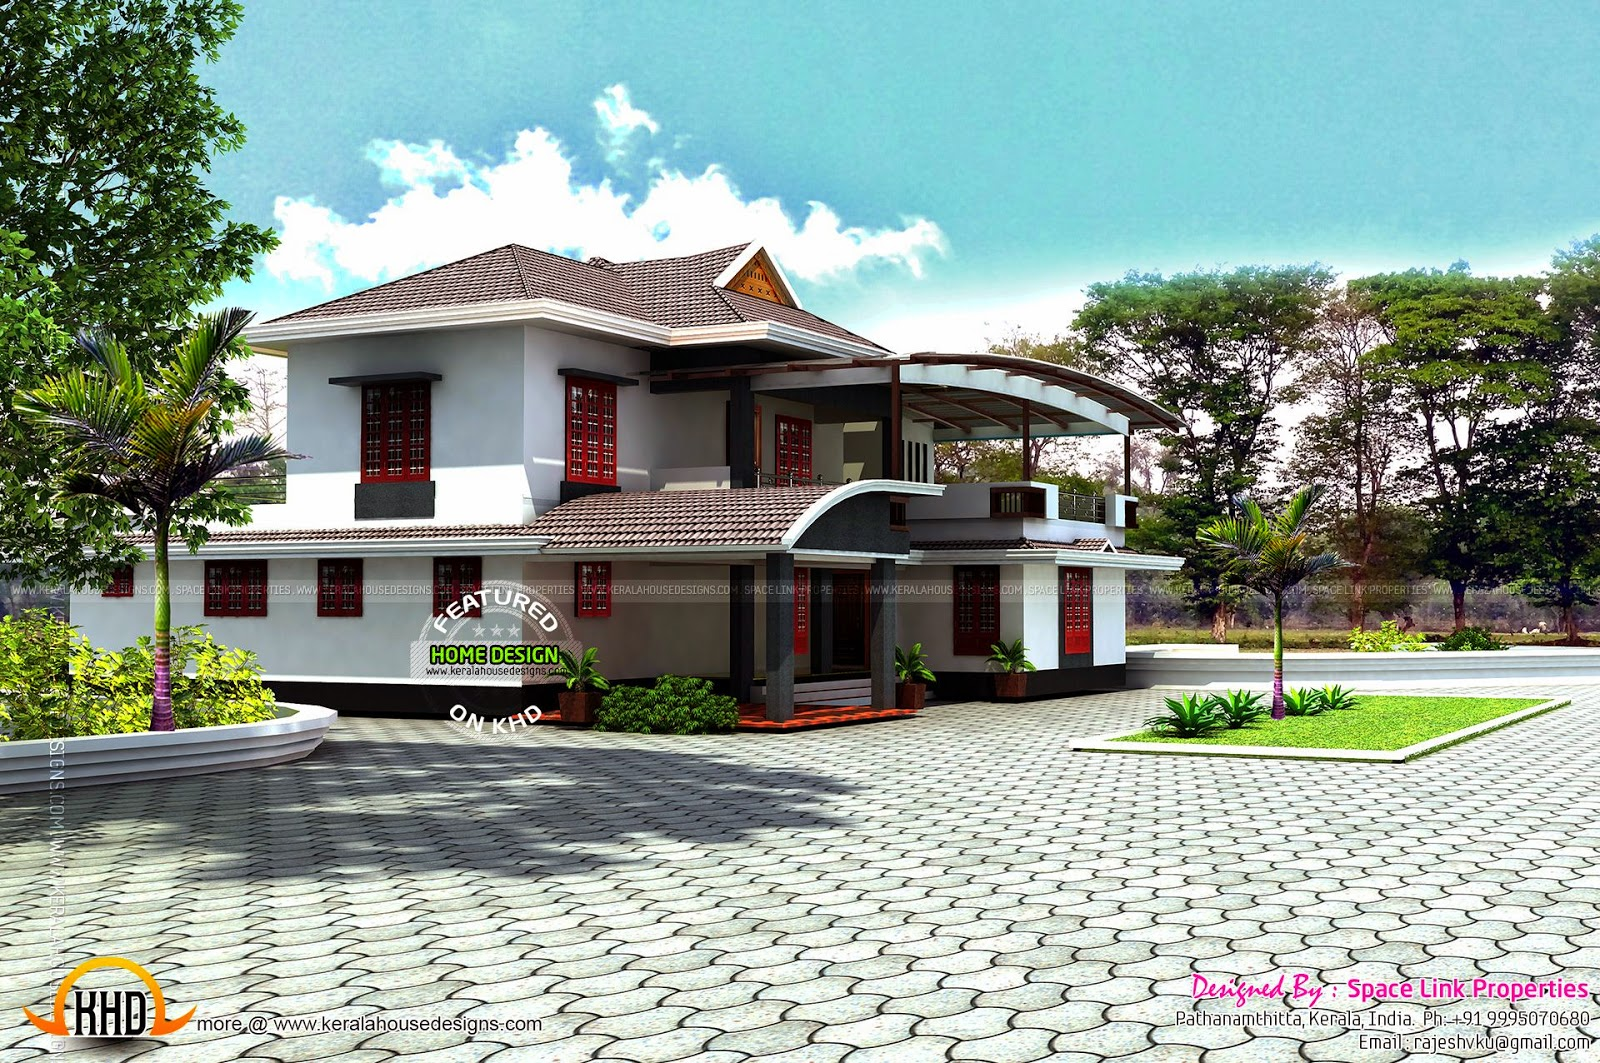 Elevation Plan And Side Views : Elevation side and front view kerala home design